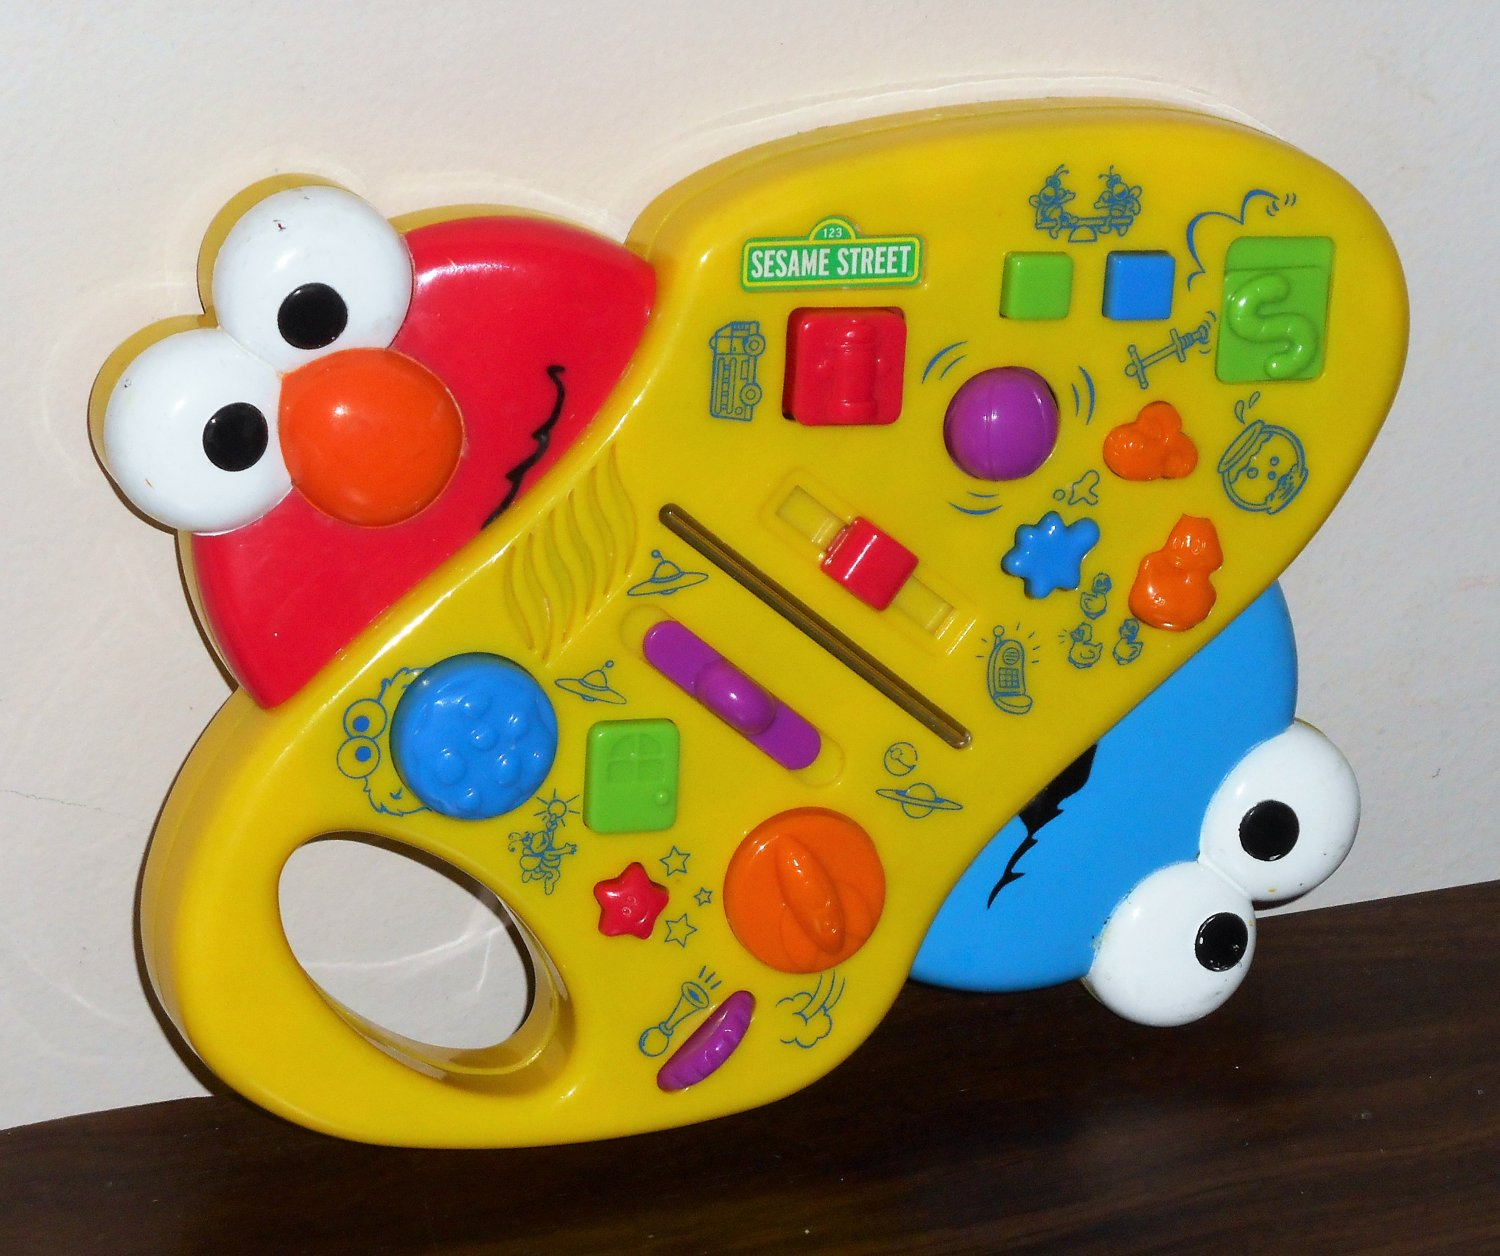 Giggle Sound Station Surprise Sesame Street Elmo Cookie Monster B9029 Electronic